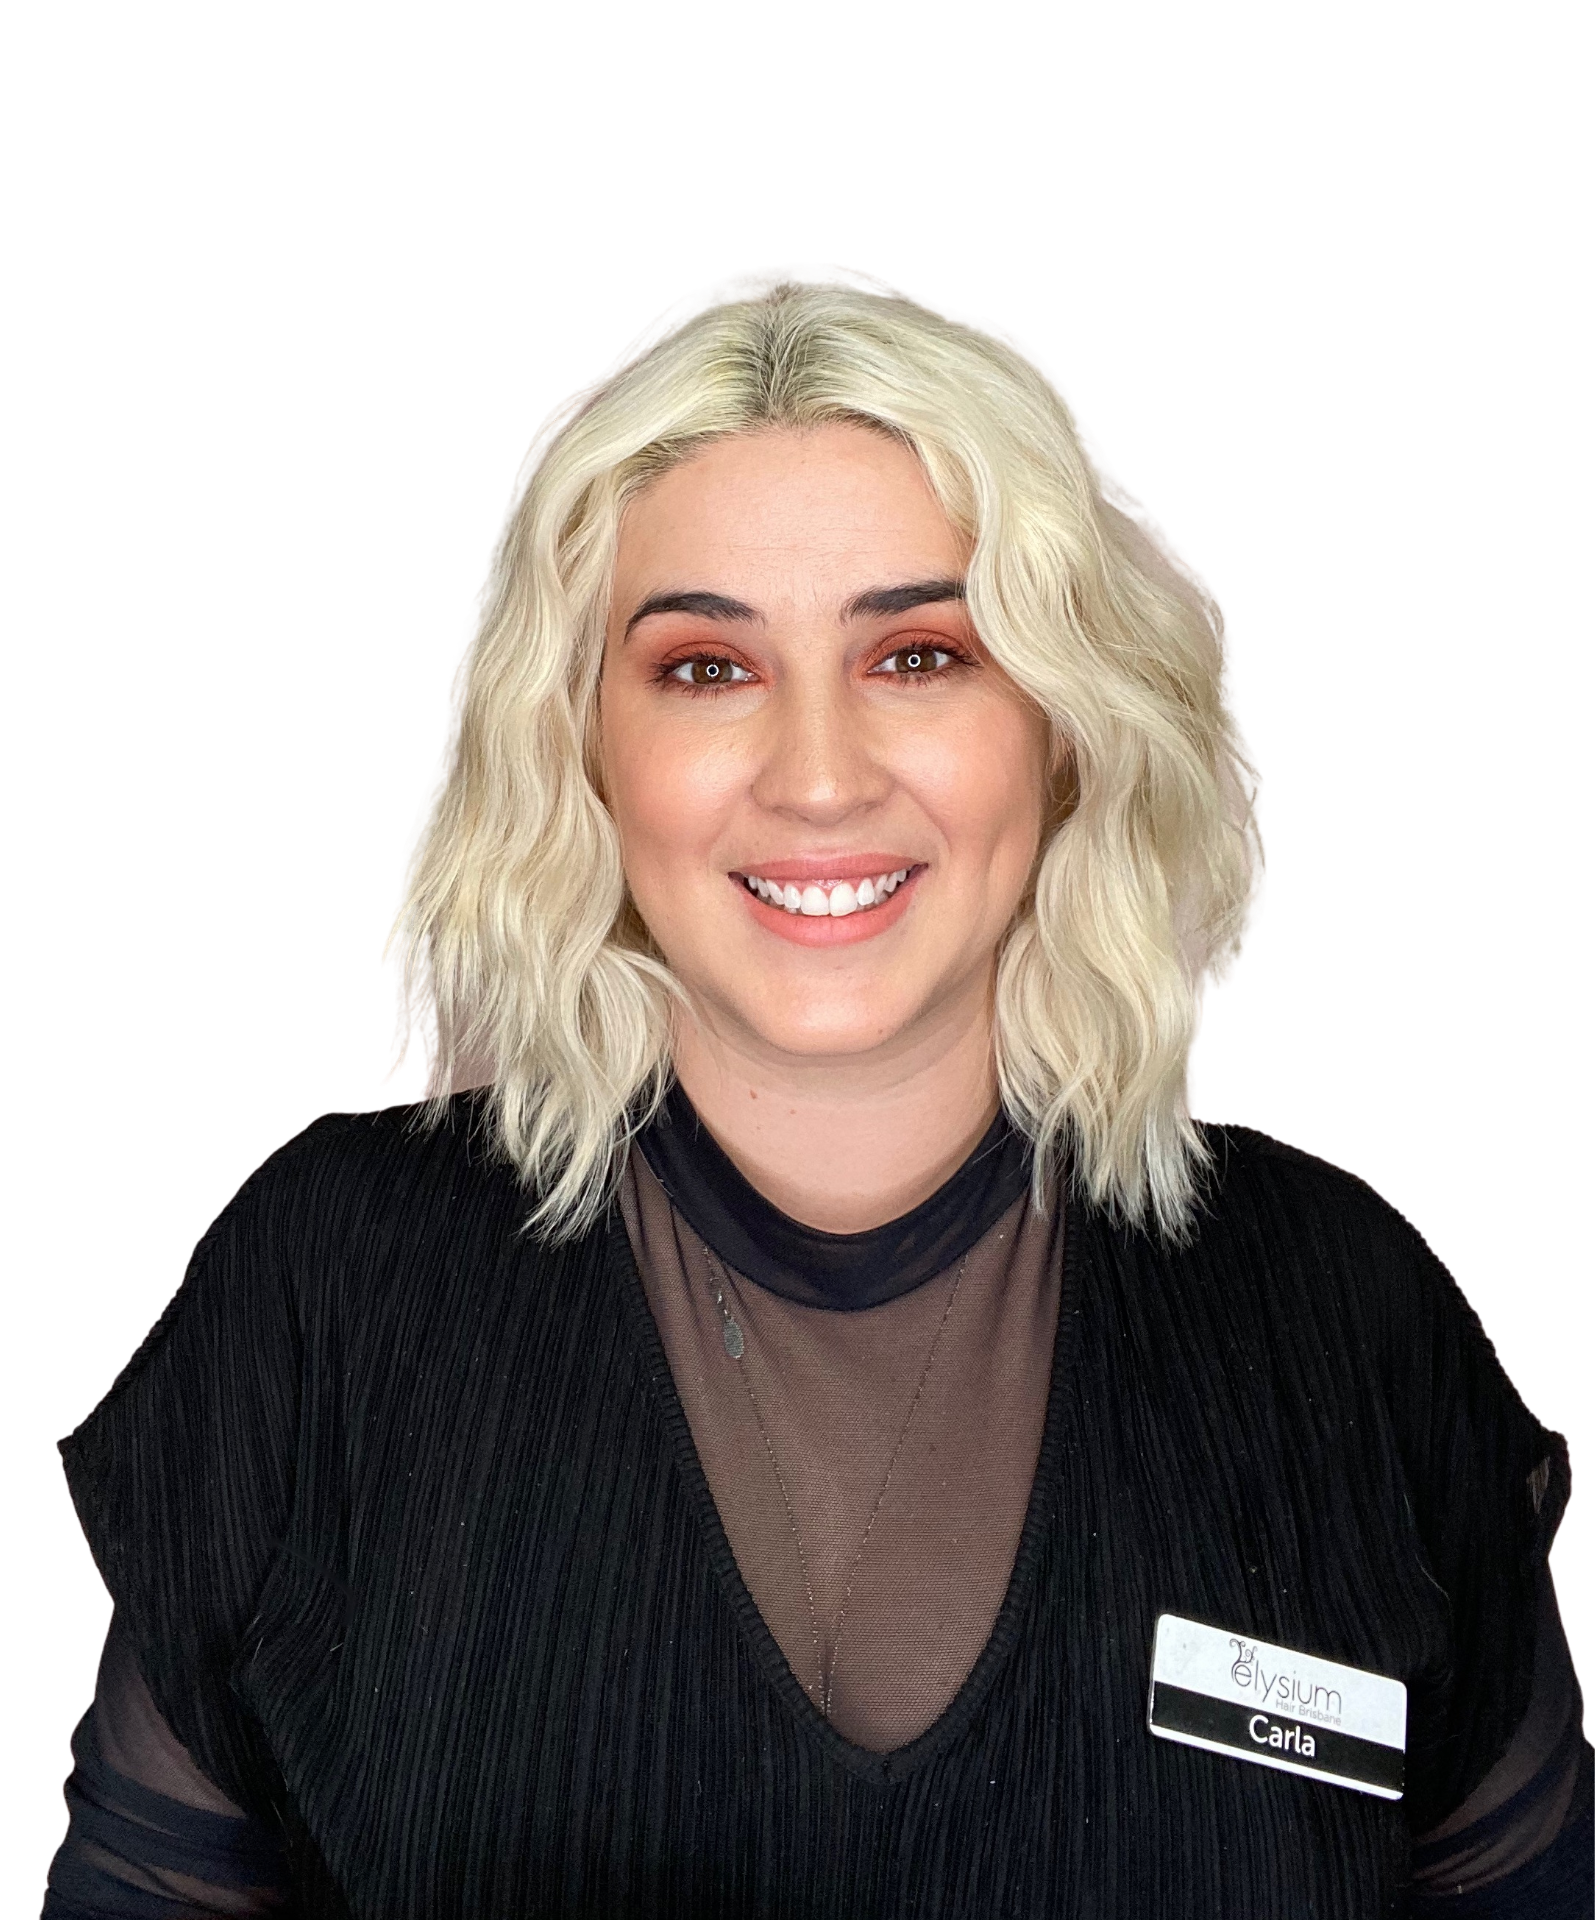 Whitney Elysium Hair Brisbane Manager